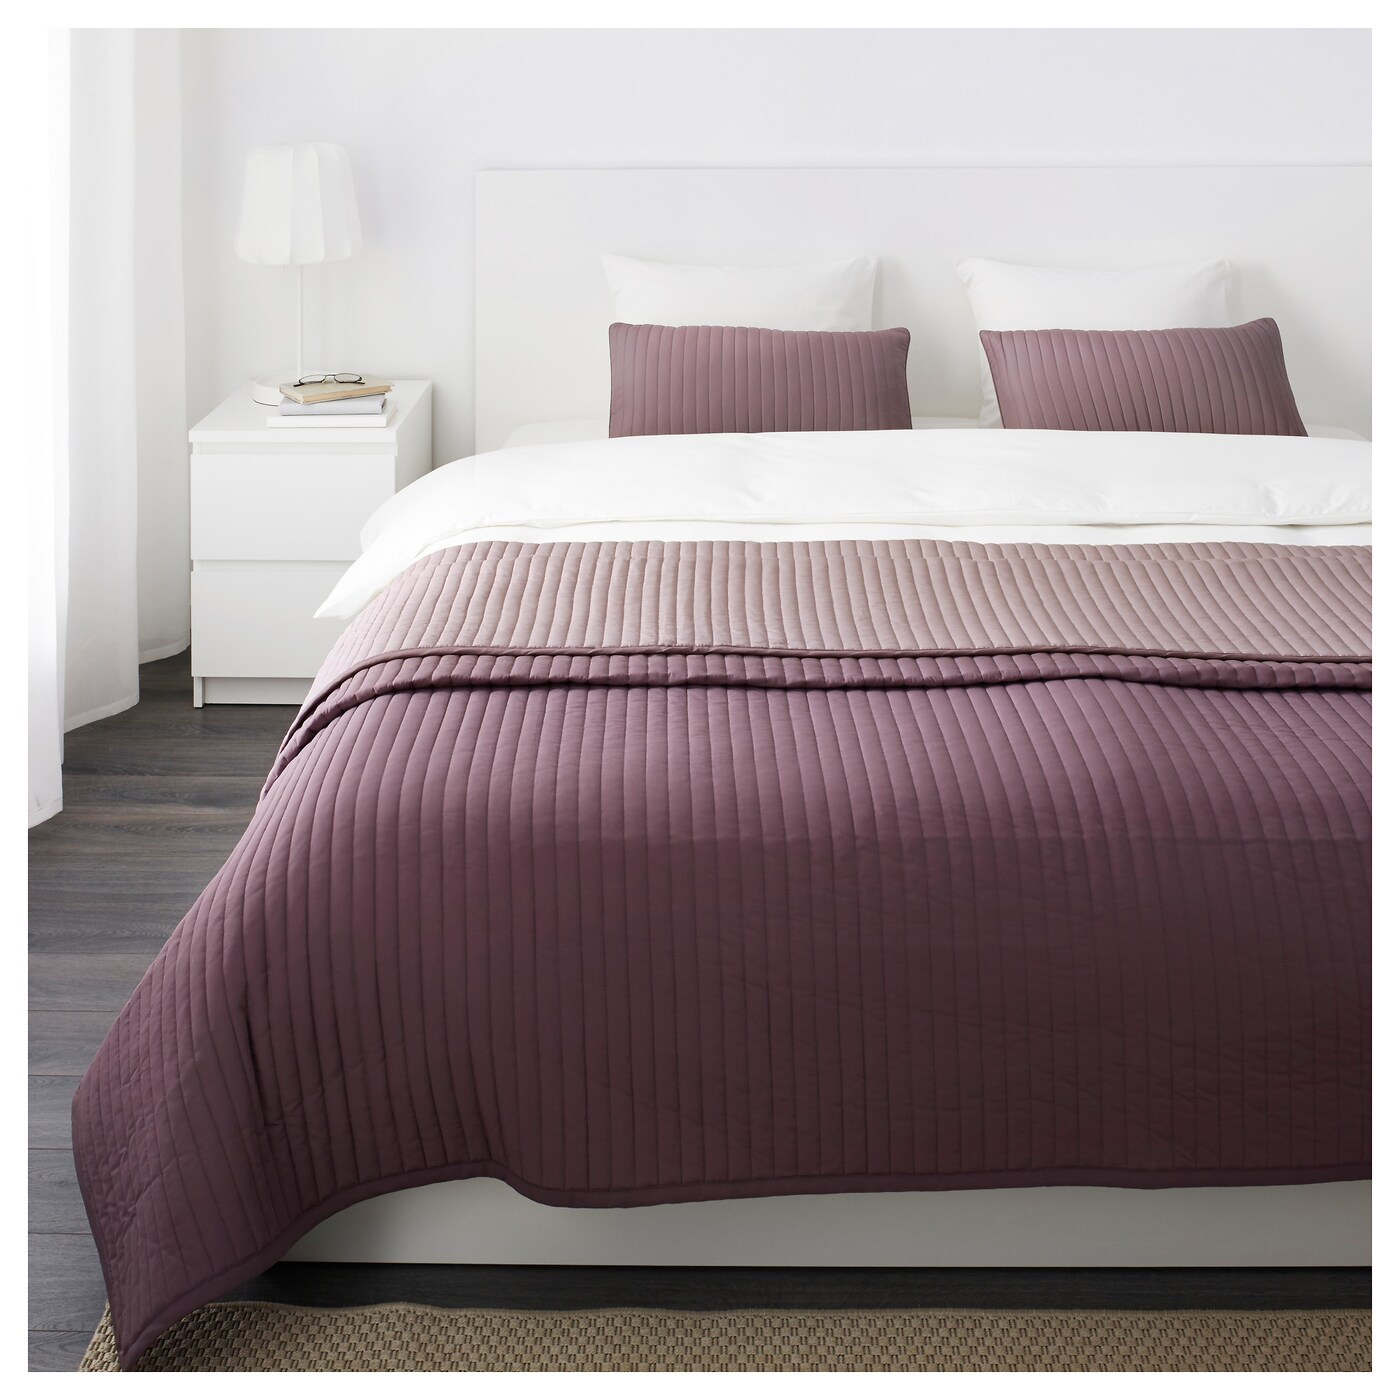 Couvre Lit Ikea Karit Bedspread And 2 Cushion Covers Lilac 260x280 40x65